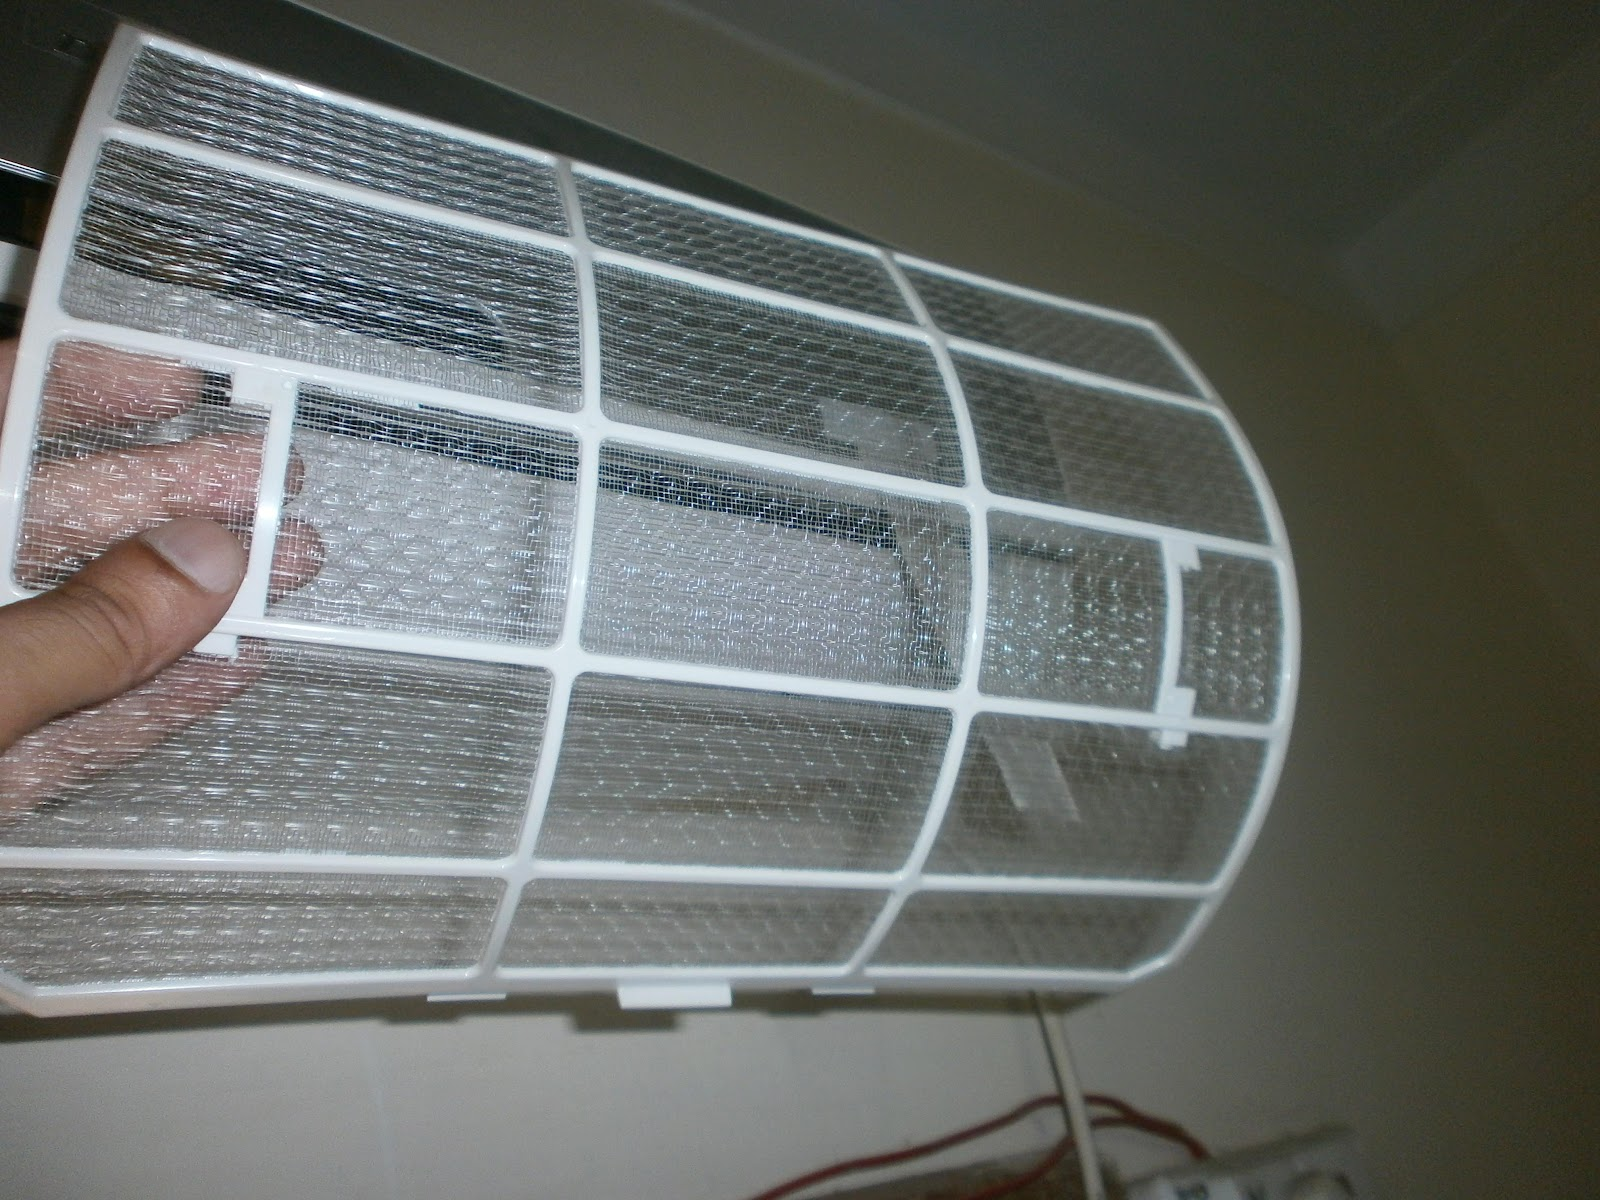 how to clean the split ac filter pictorial guide school of electrical technology. Black Bedroom Furniture Sets. Home Design Ideas